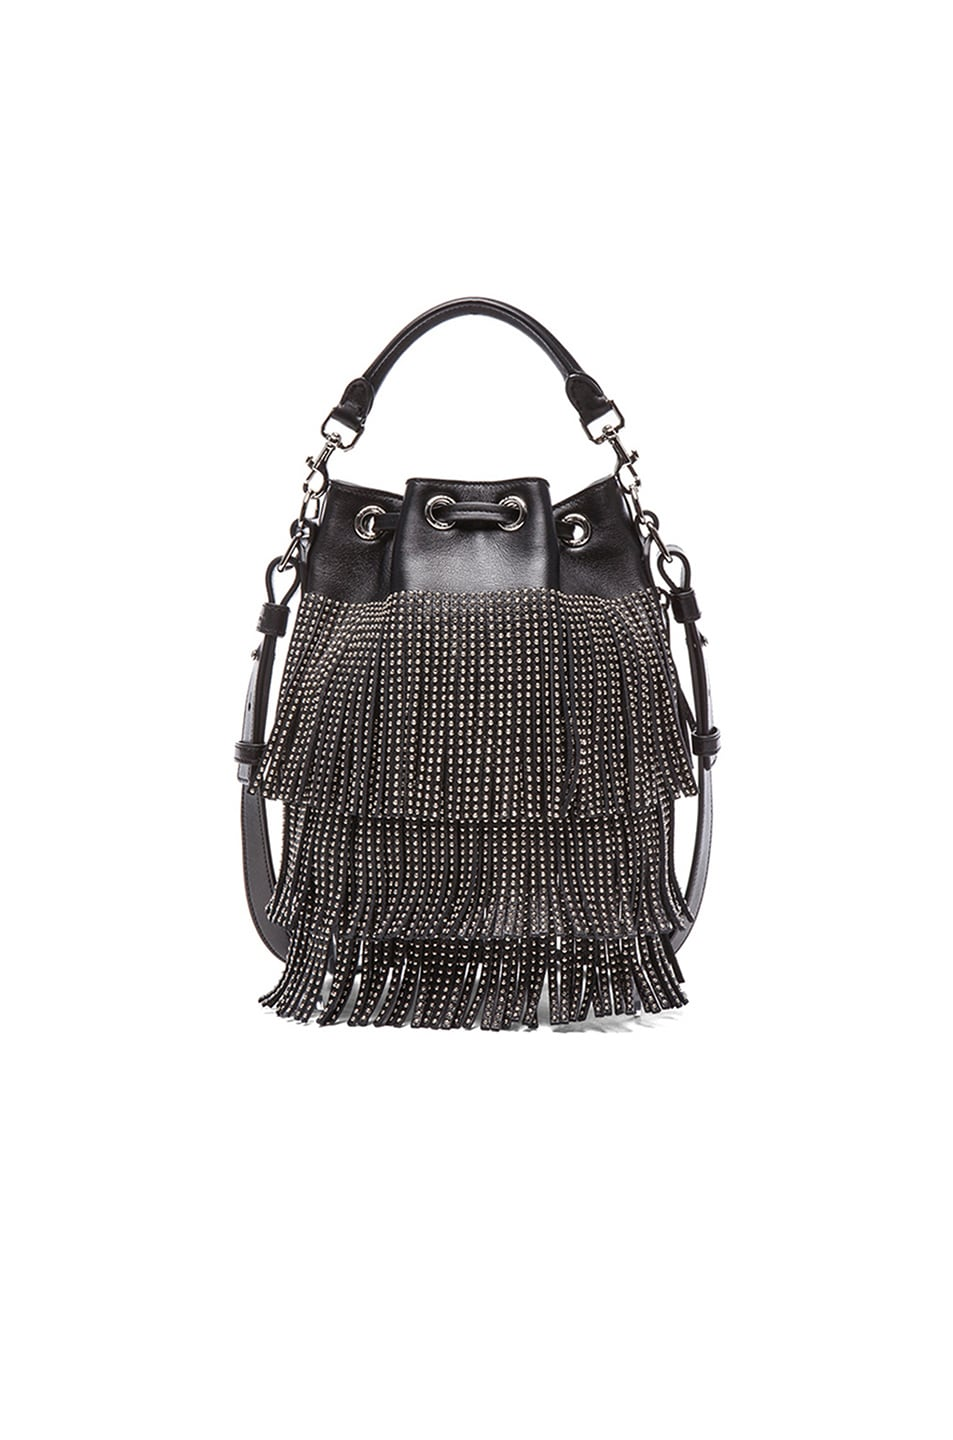 Image 3 of Saint Laurent Small Seau Studded Bucket Bag with Fringe in Black 72004f7733